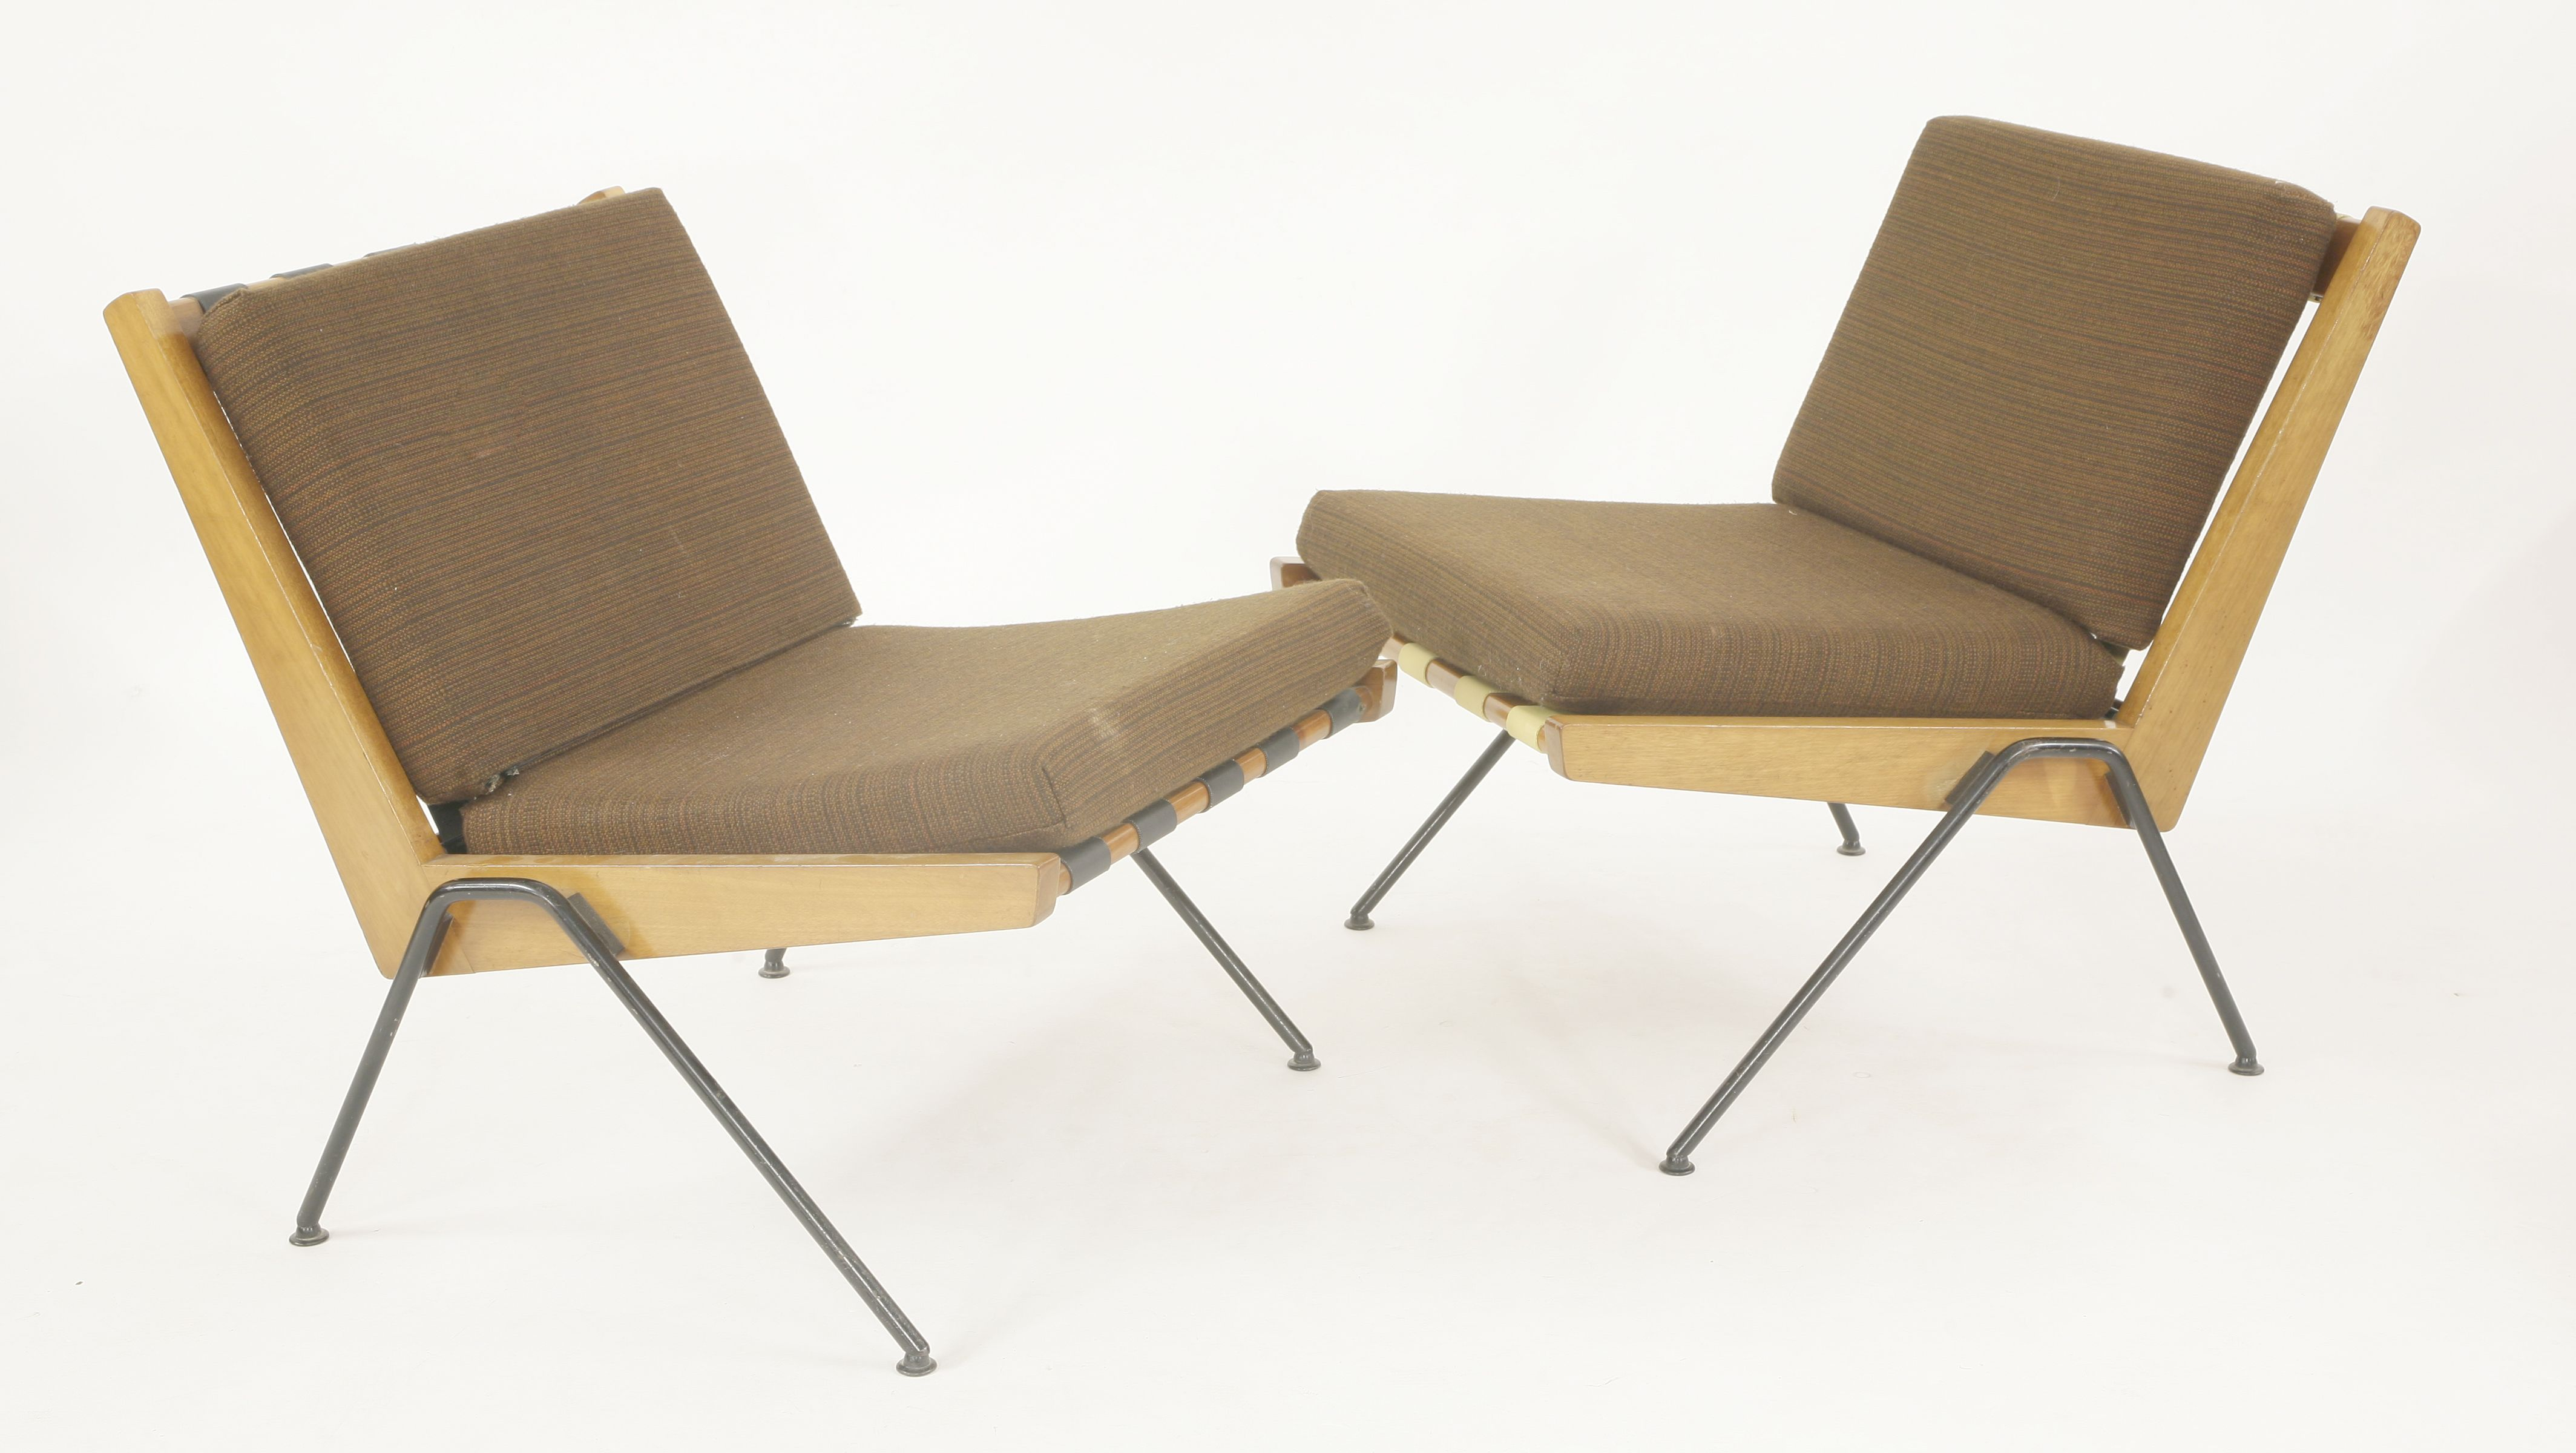 A Pair Of Chevron Chairs Designed By Robin Day For Hille In 1959